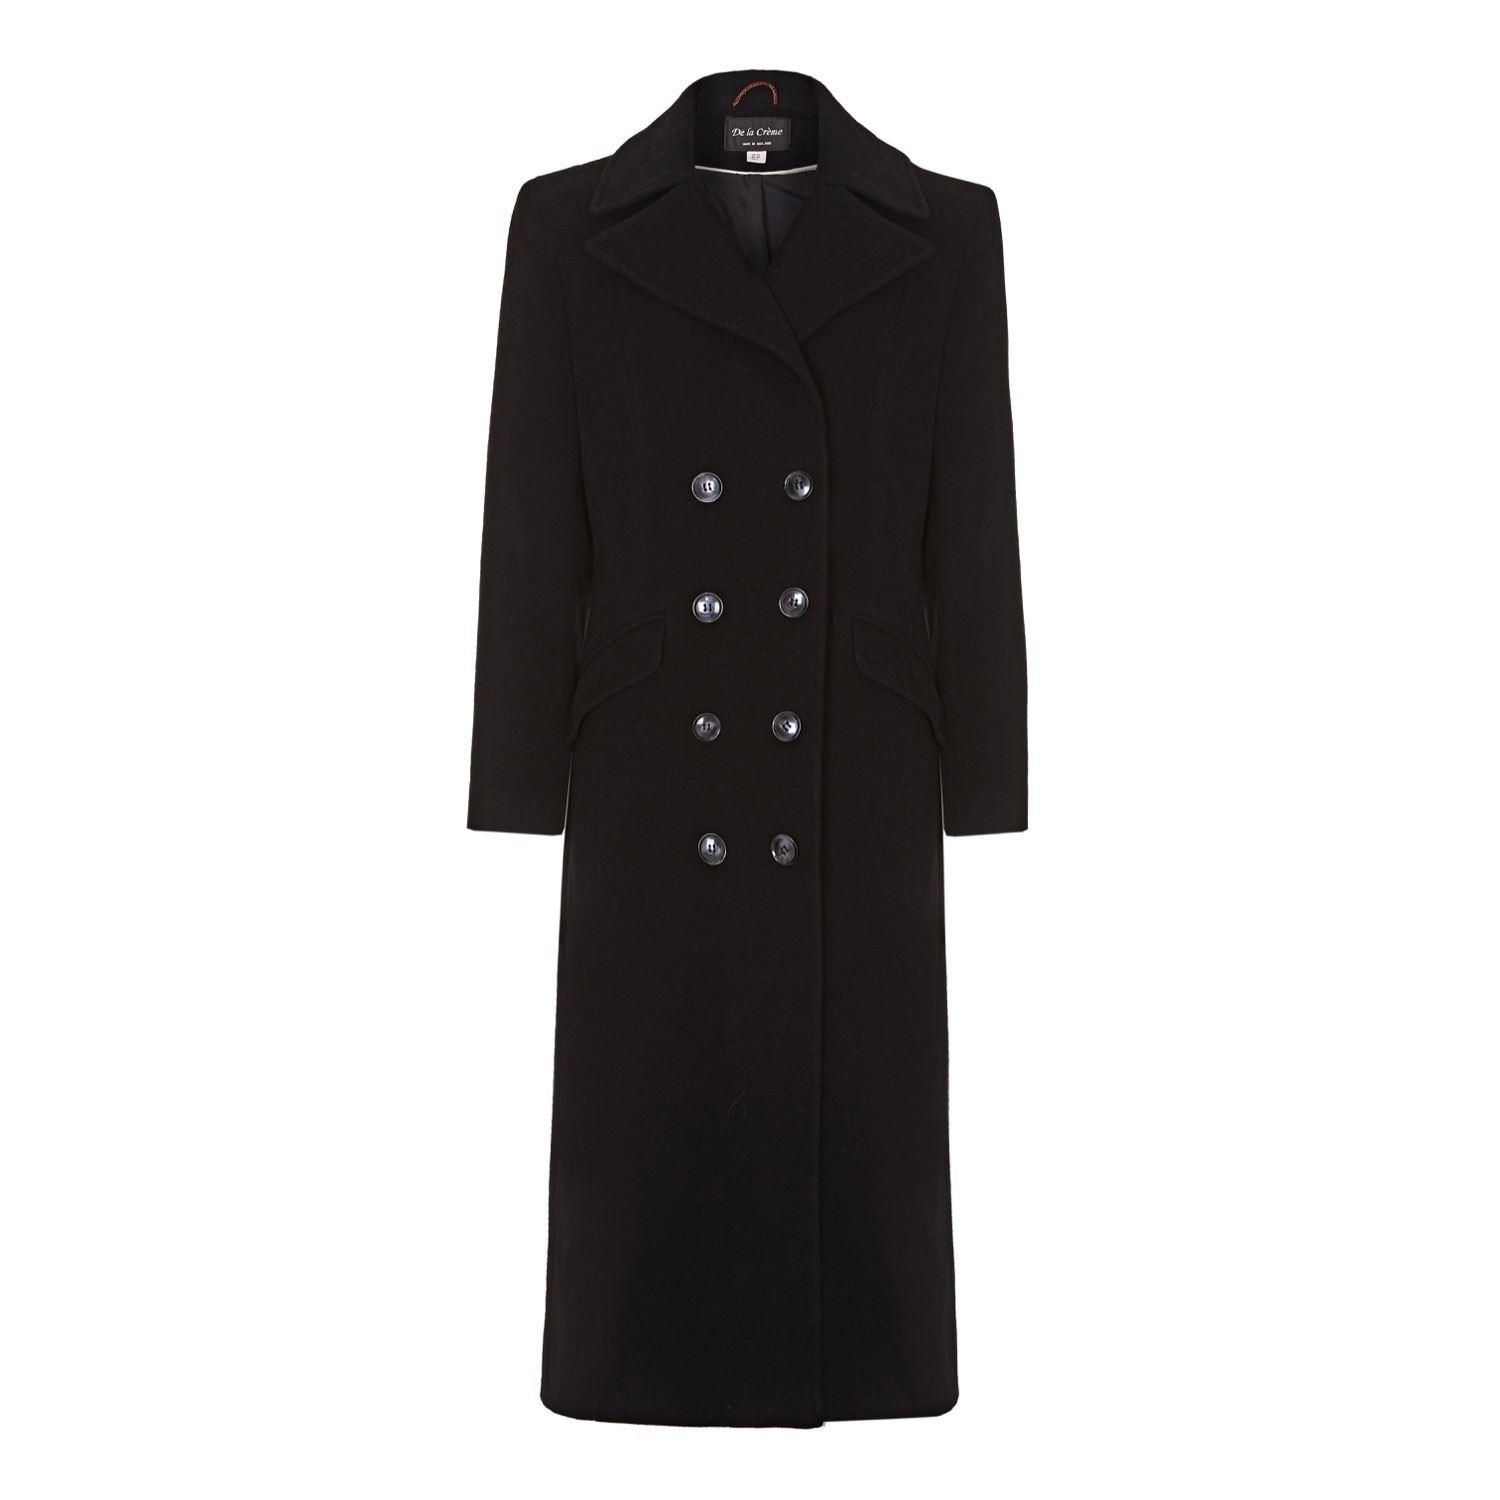 RED Womens Double Breasted Cashmere Coat